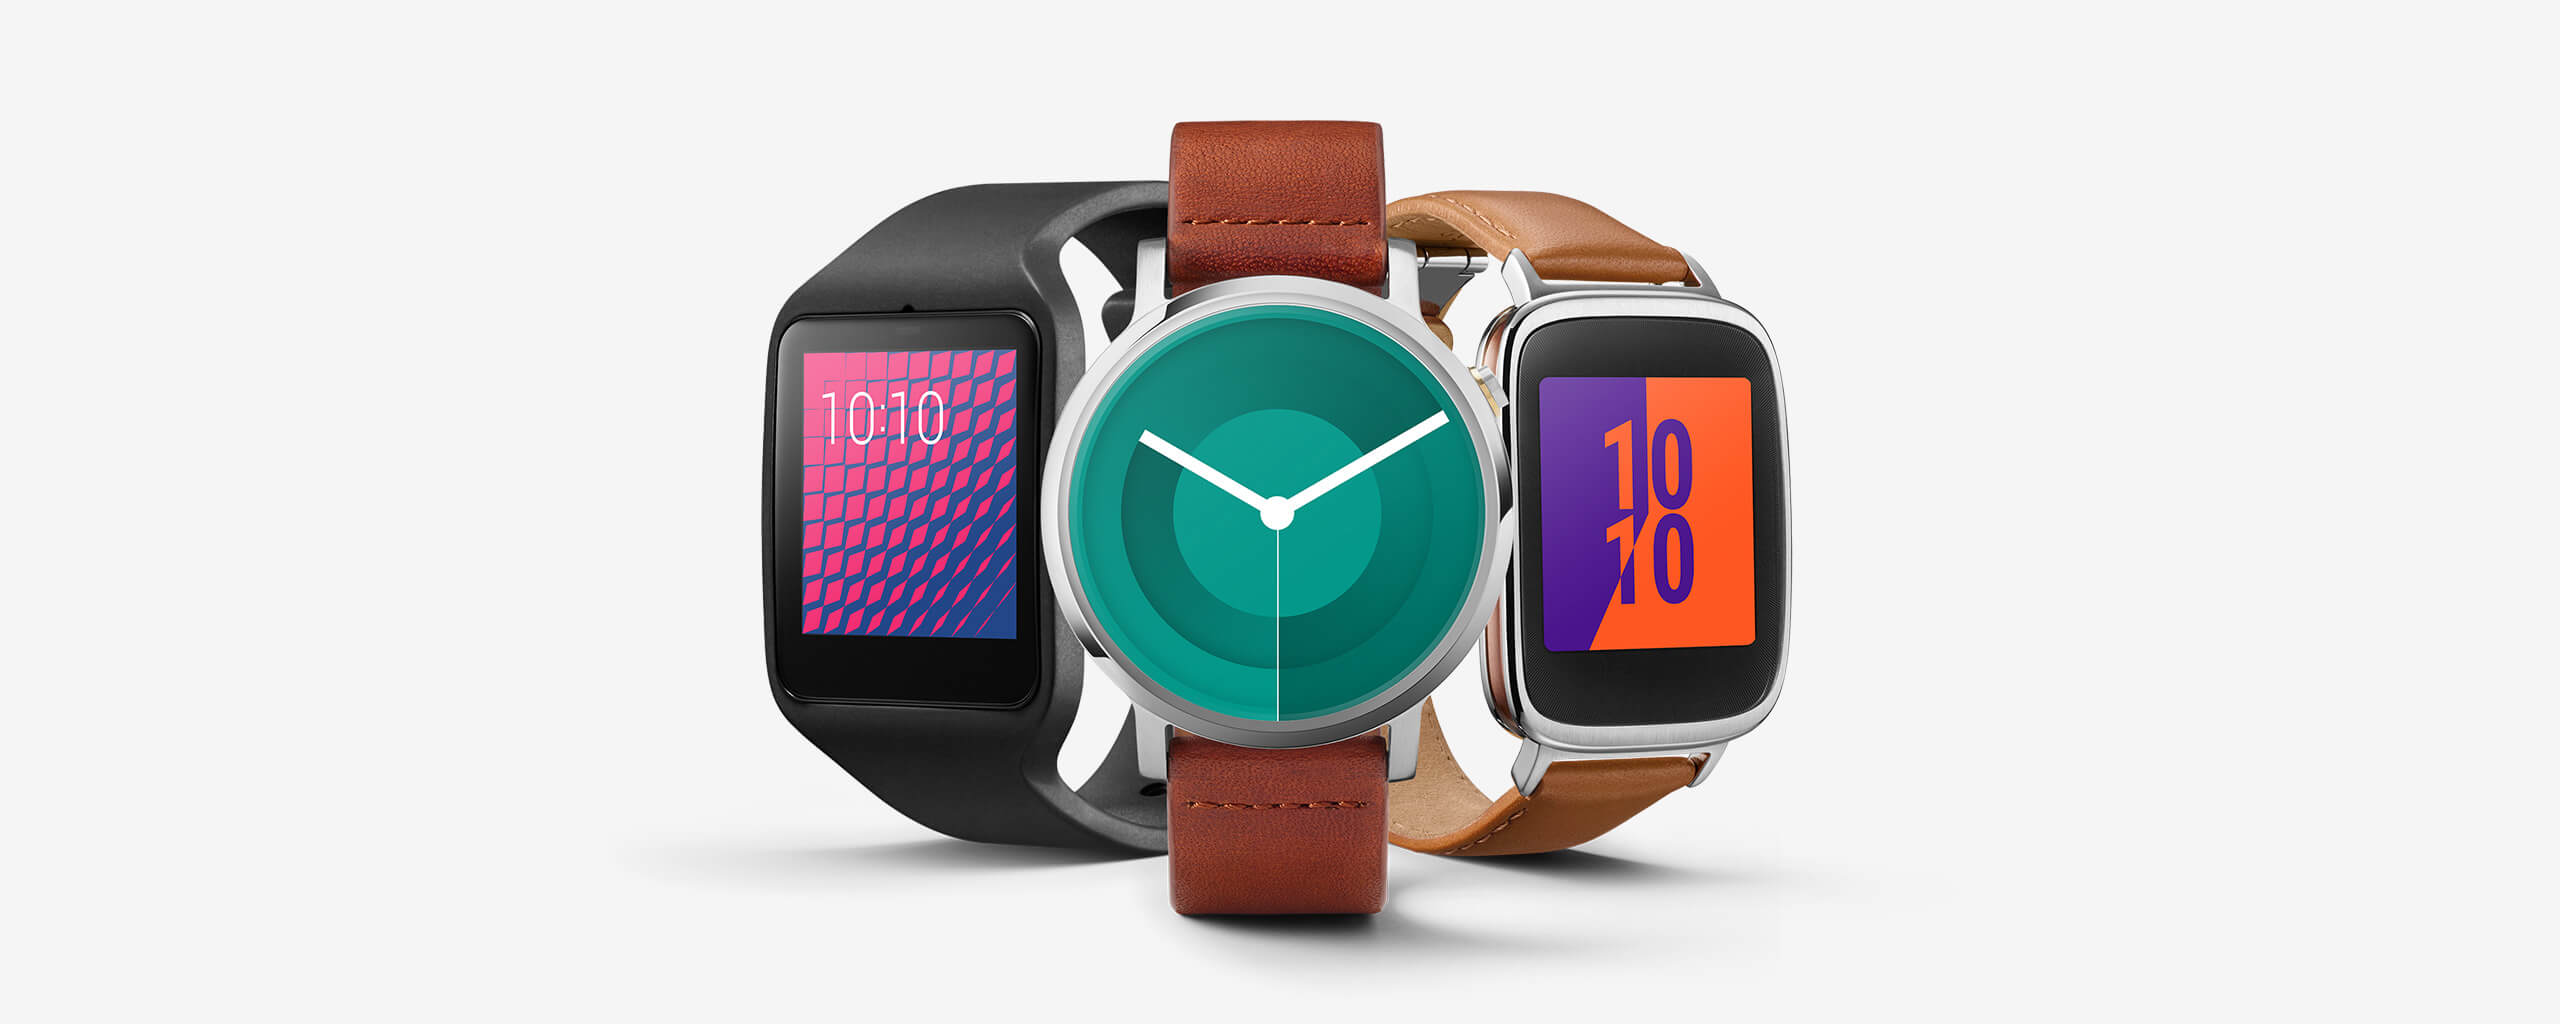 01_ustwo_watch_faces